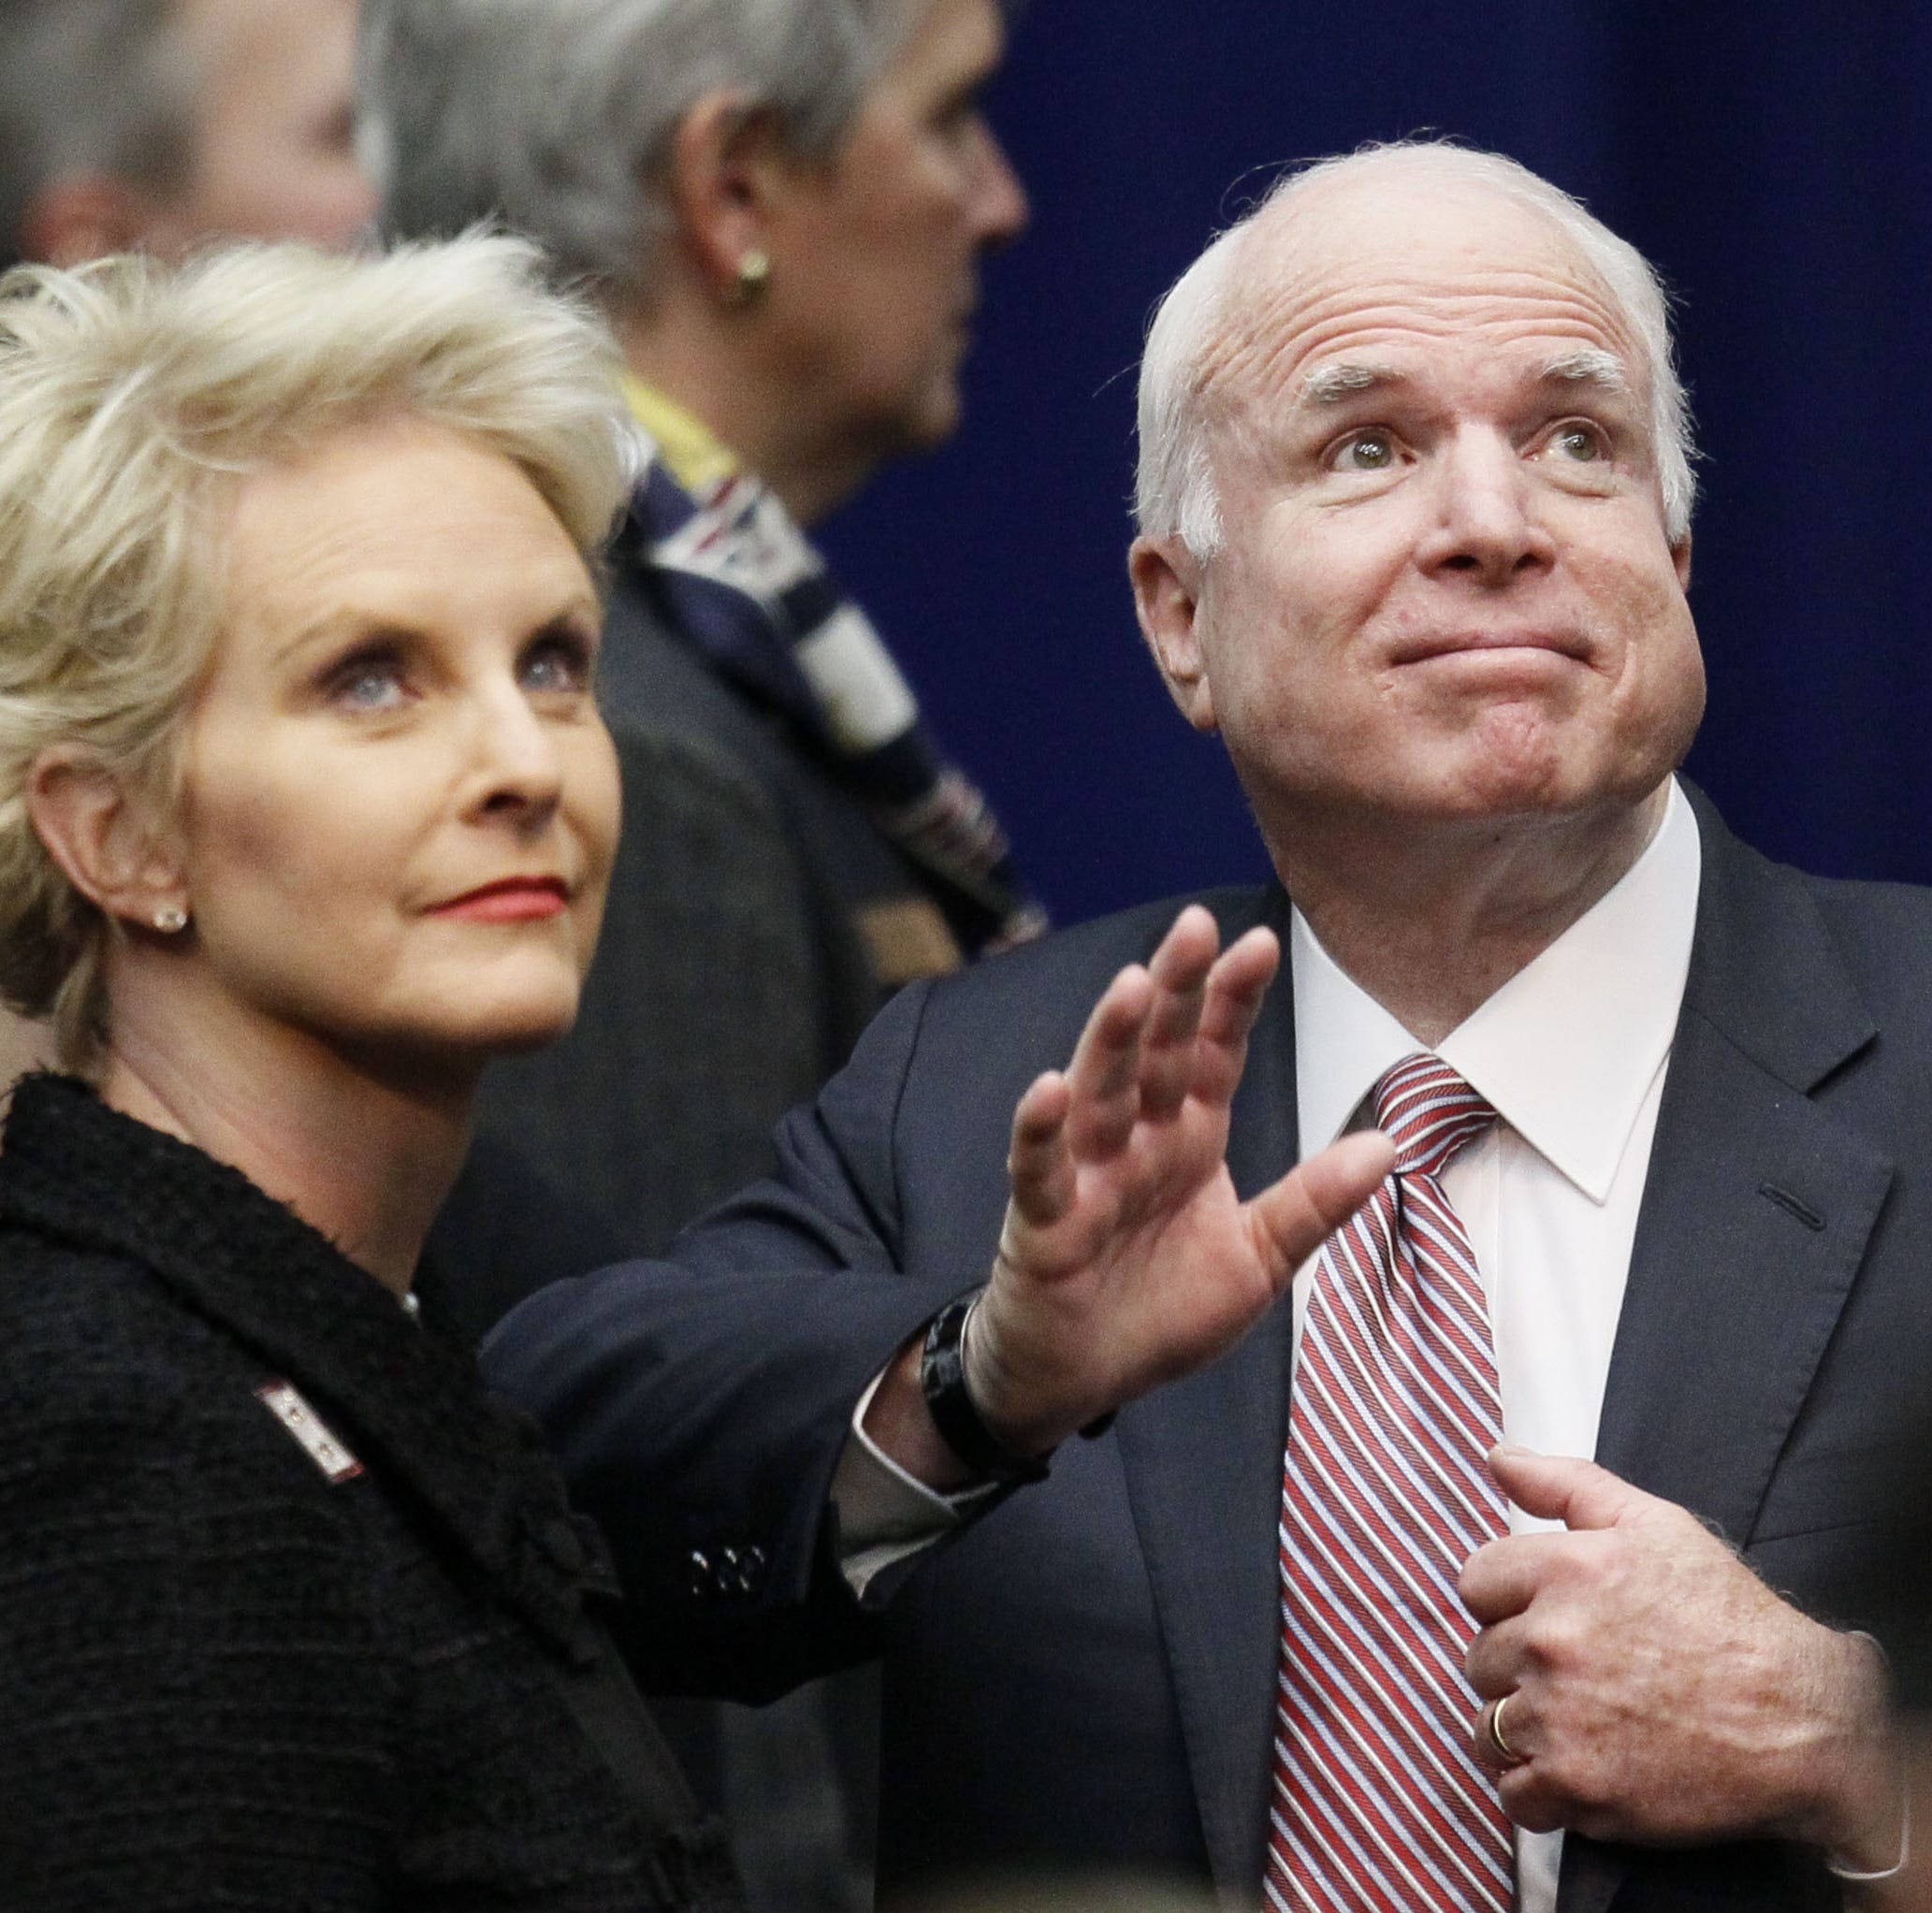 Cindy McCain: To honor John McCain, fight for a greater cause